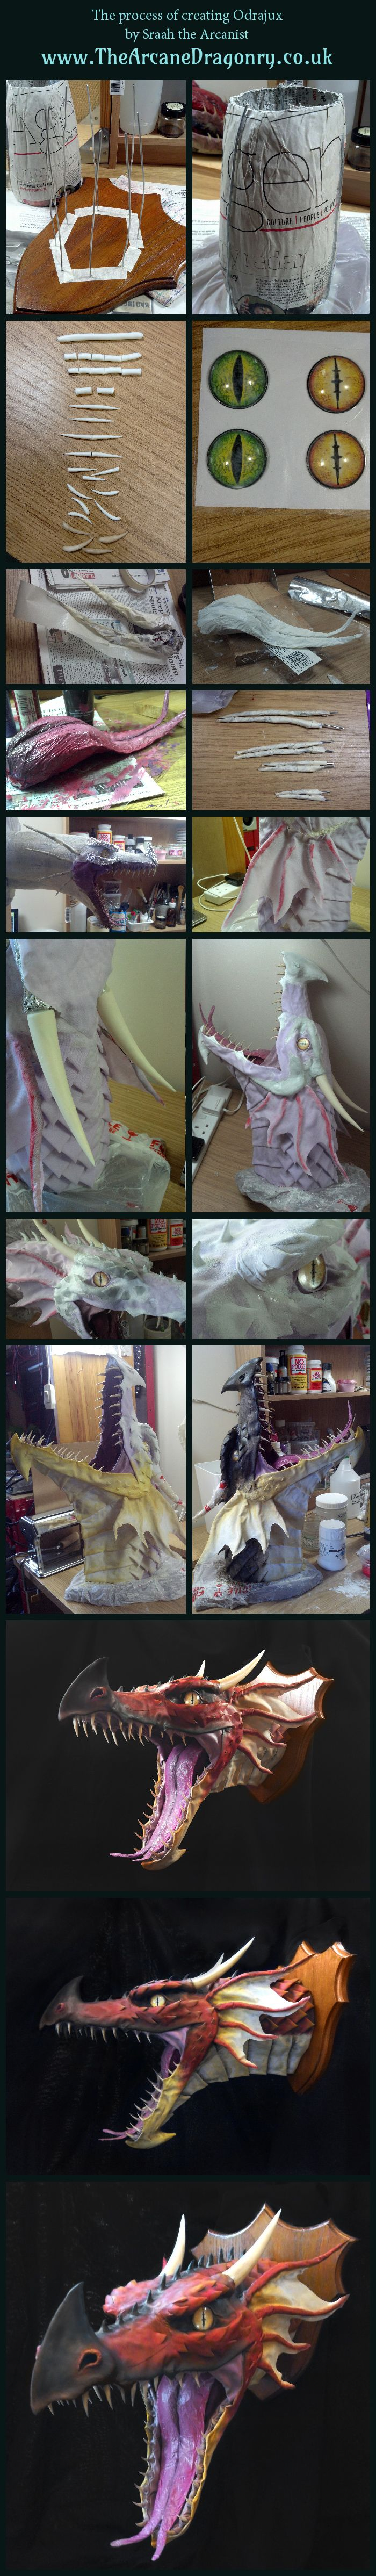 Epic original fantasy art. Unique custom hand made ethical dragon trophy head sculpture, wall mounted, home decoration. Faux taxidermy made with paper mache, cloth / fabric mache, fimo (polymer and air-dry clay), horns, newspaper, cardboard, oak shield, acrylic paint, cotton sheets. Visit The Arcane Dragonry online for free tutorials!  crafts, etsy, fauxidermy, home deco, Dan Reeder, Skyrim, Dungeons & Dragons, roleplay, RPG, Tolkien, Game of Thrones, Targaryen, World of Warcraft, power…